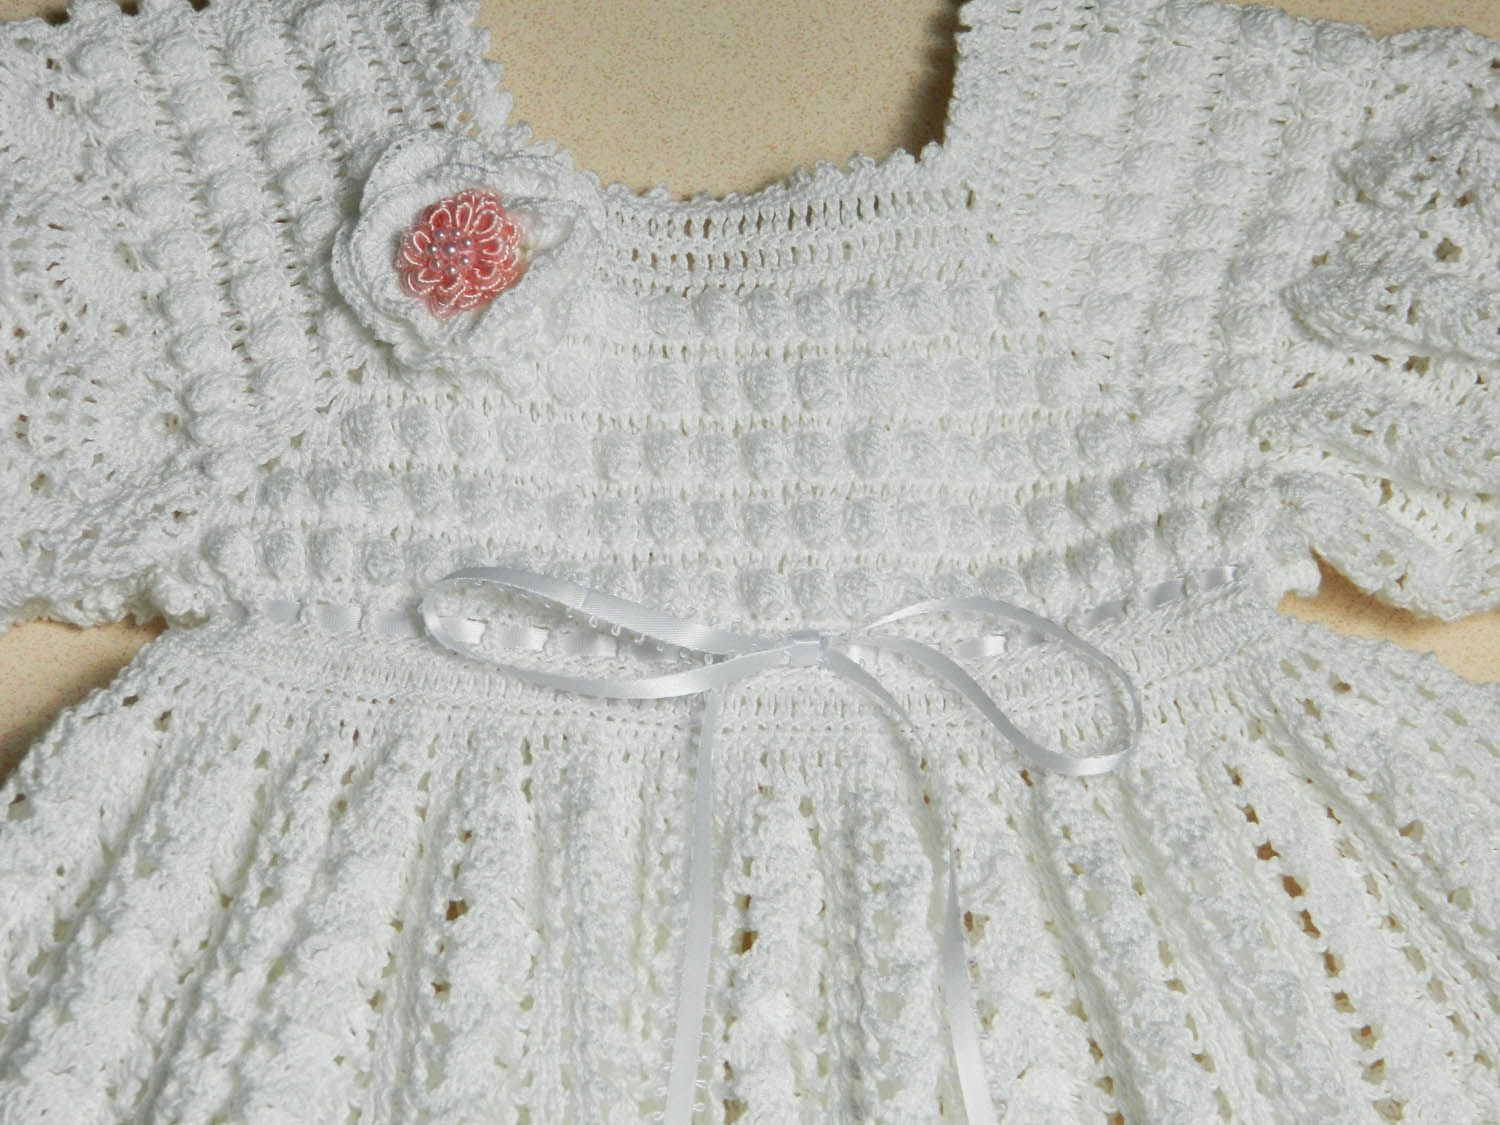 Crochet Baby Dress And Bonnet Pattern : cotton thread crochet baby patterns really appreciate a ...